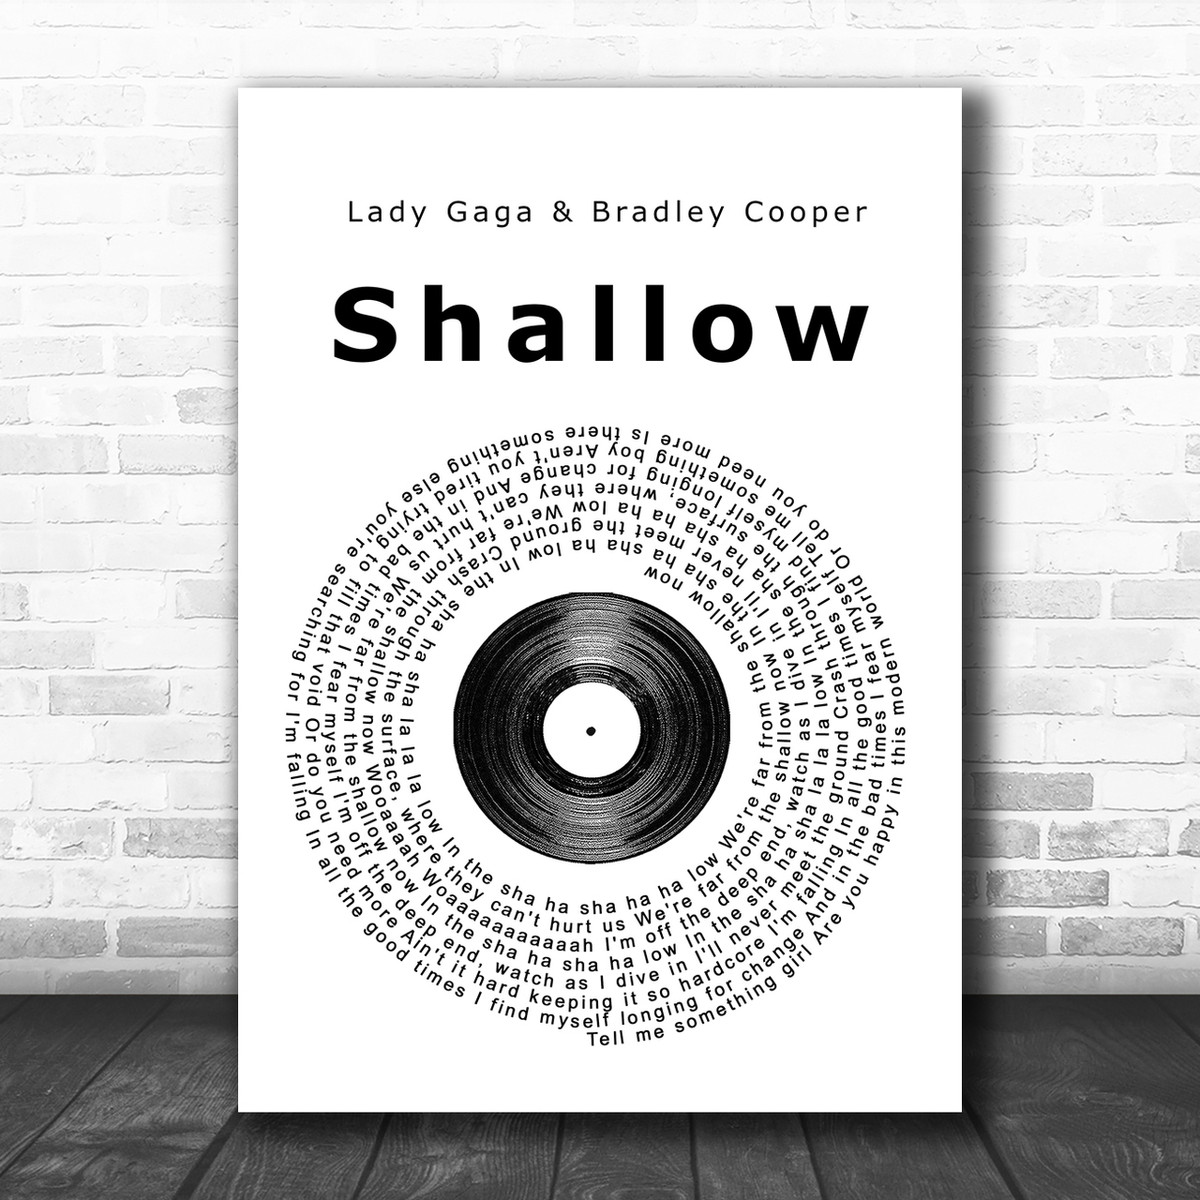 Lady Gaga & Bradley Cooper Shallow Vinyl Record Song Lyric Music Wall Art  Print